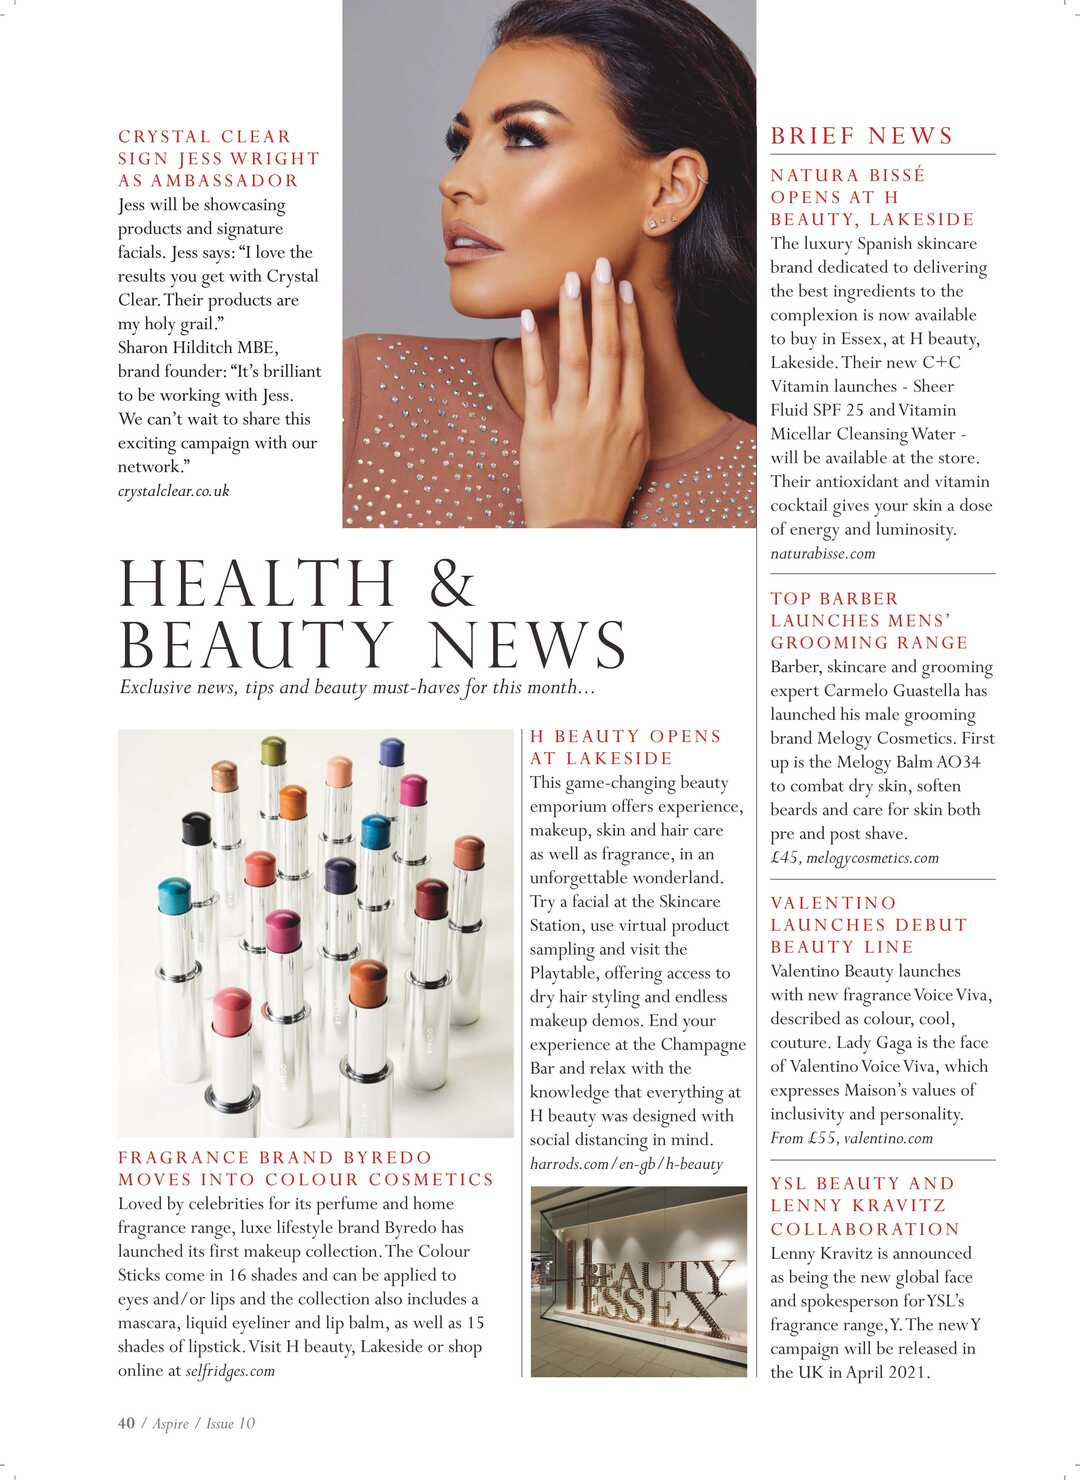 Page 40 of Health & Beauty News